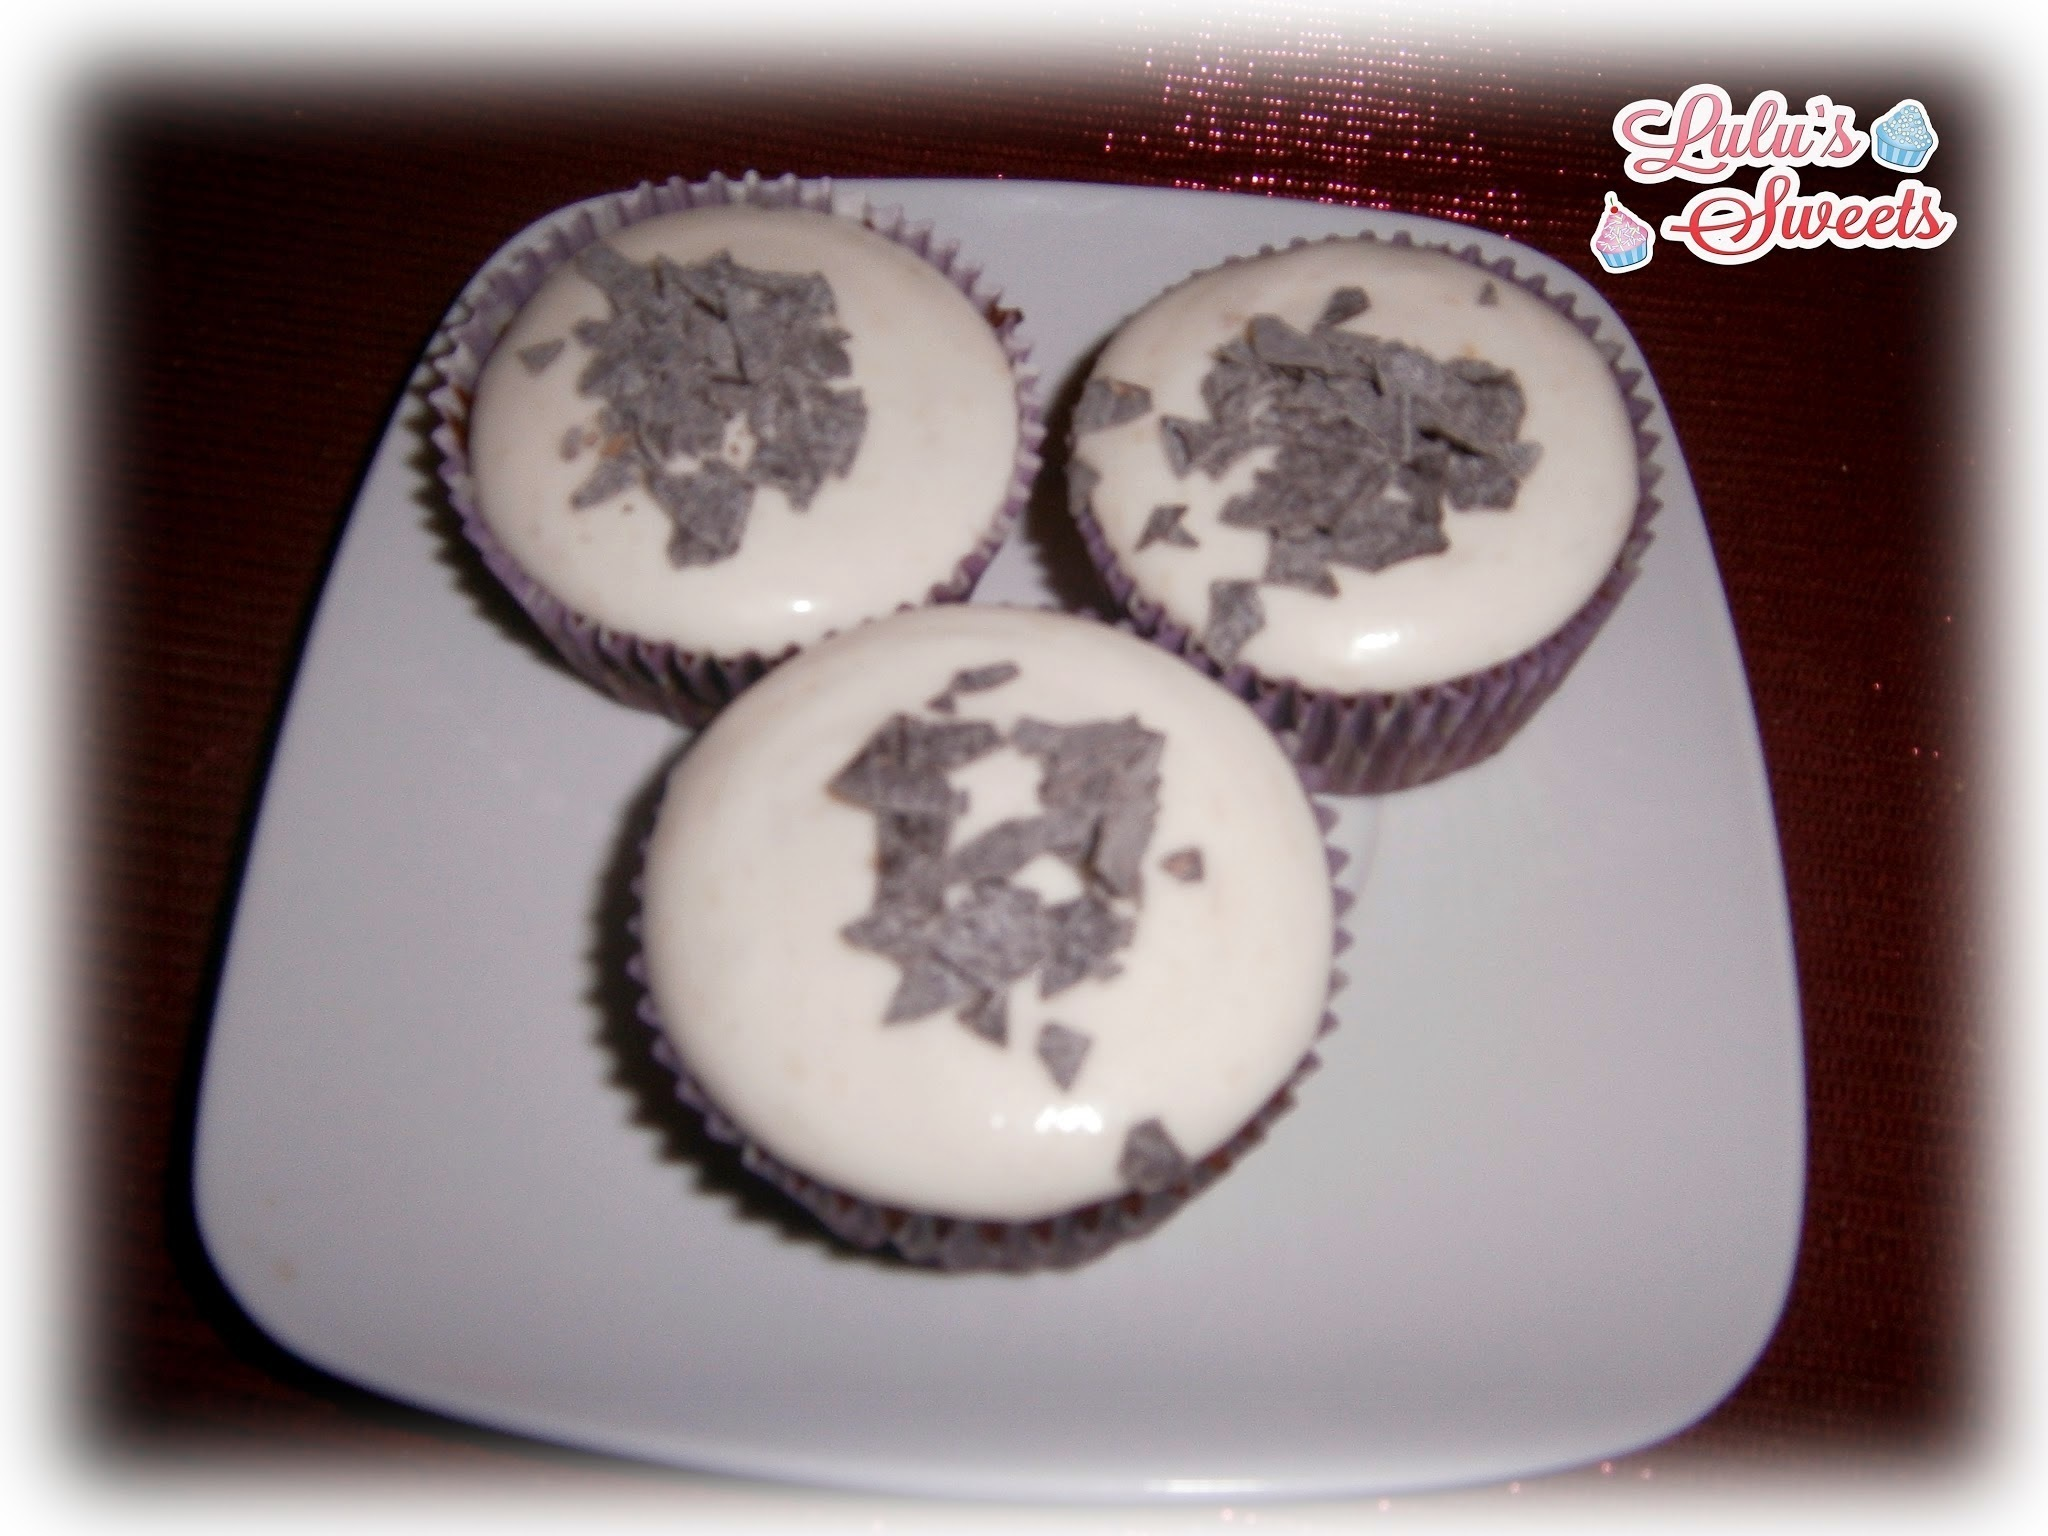 CUPCAKES DE CHOCOLATE Y CREAM CHEESE FROSTING DE PLÁTANO